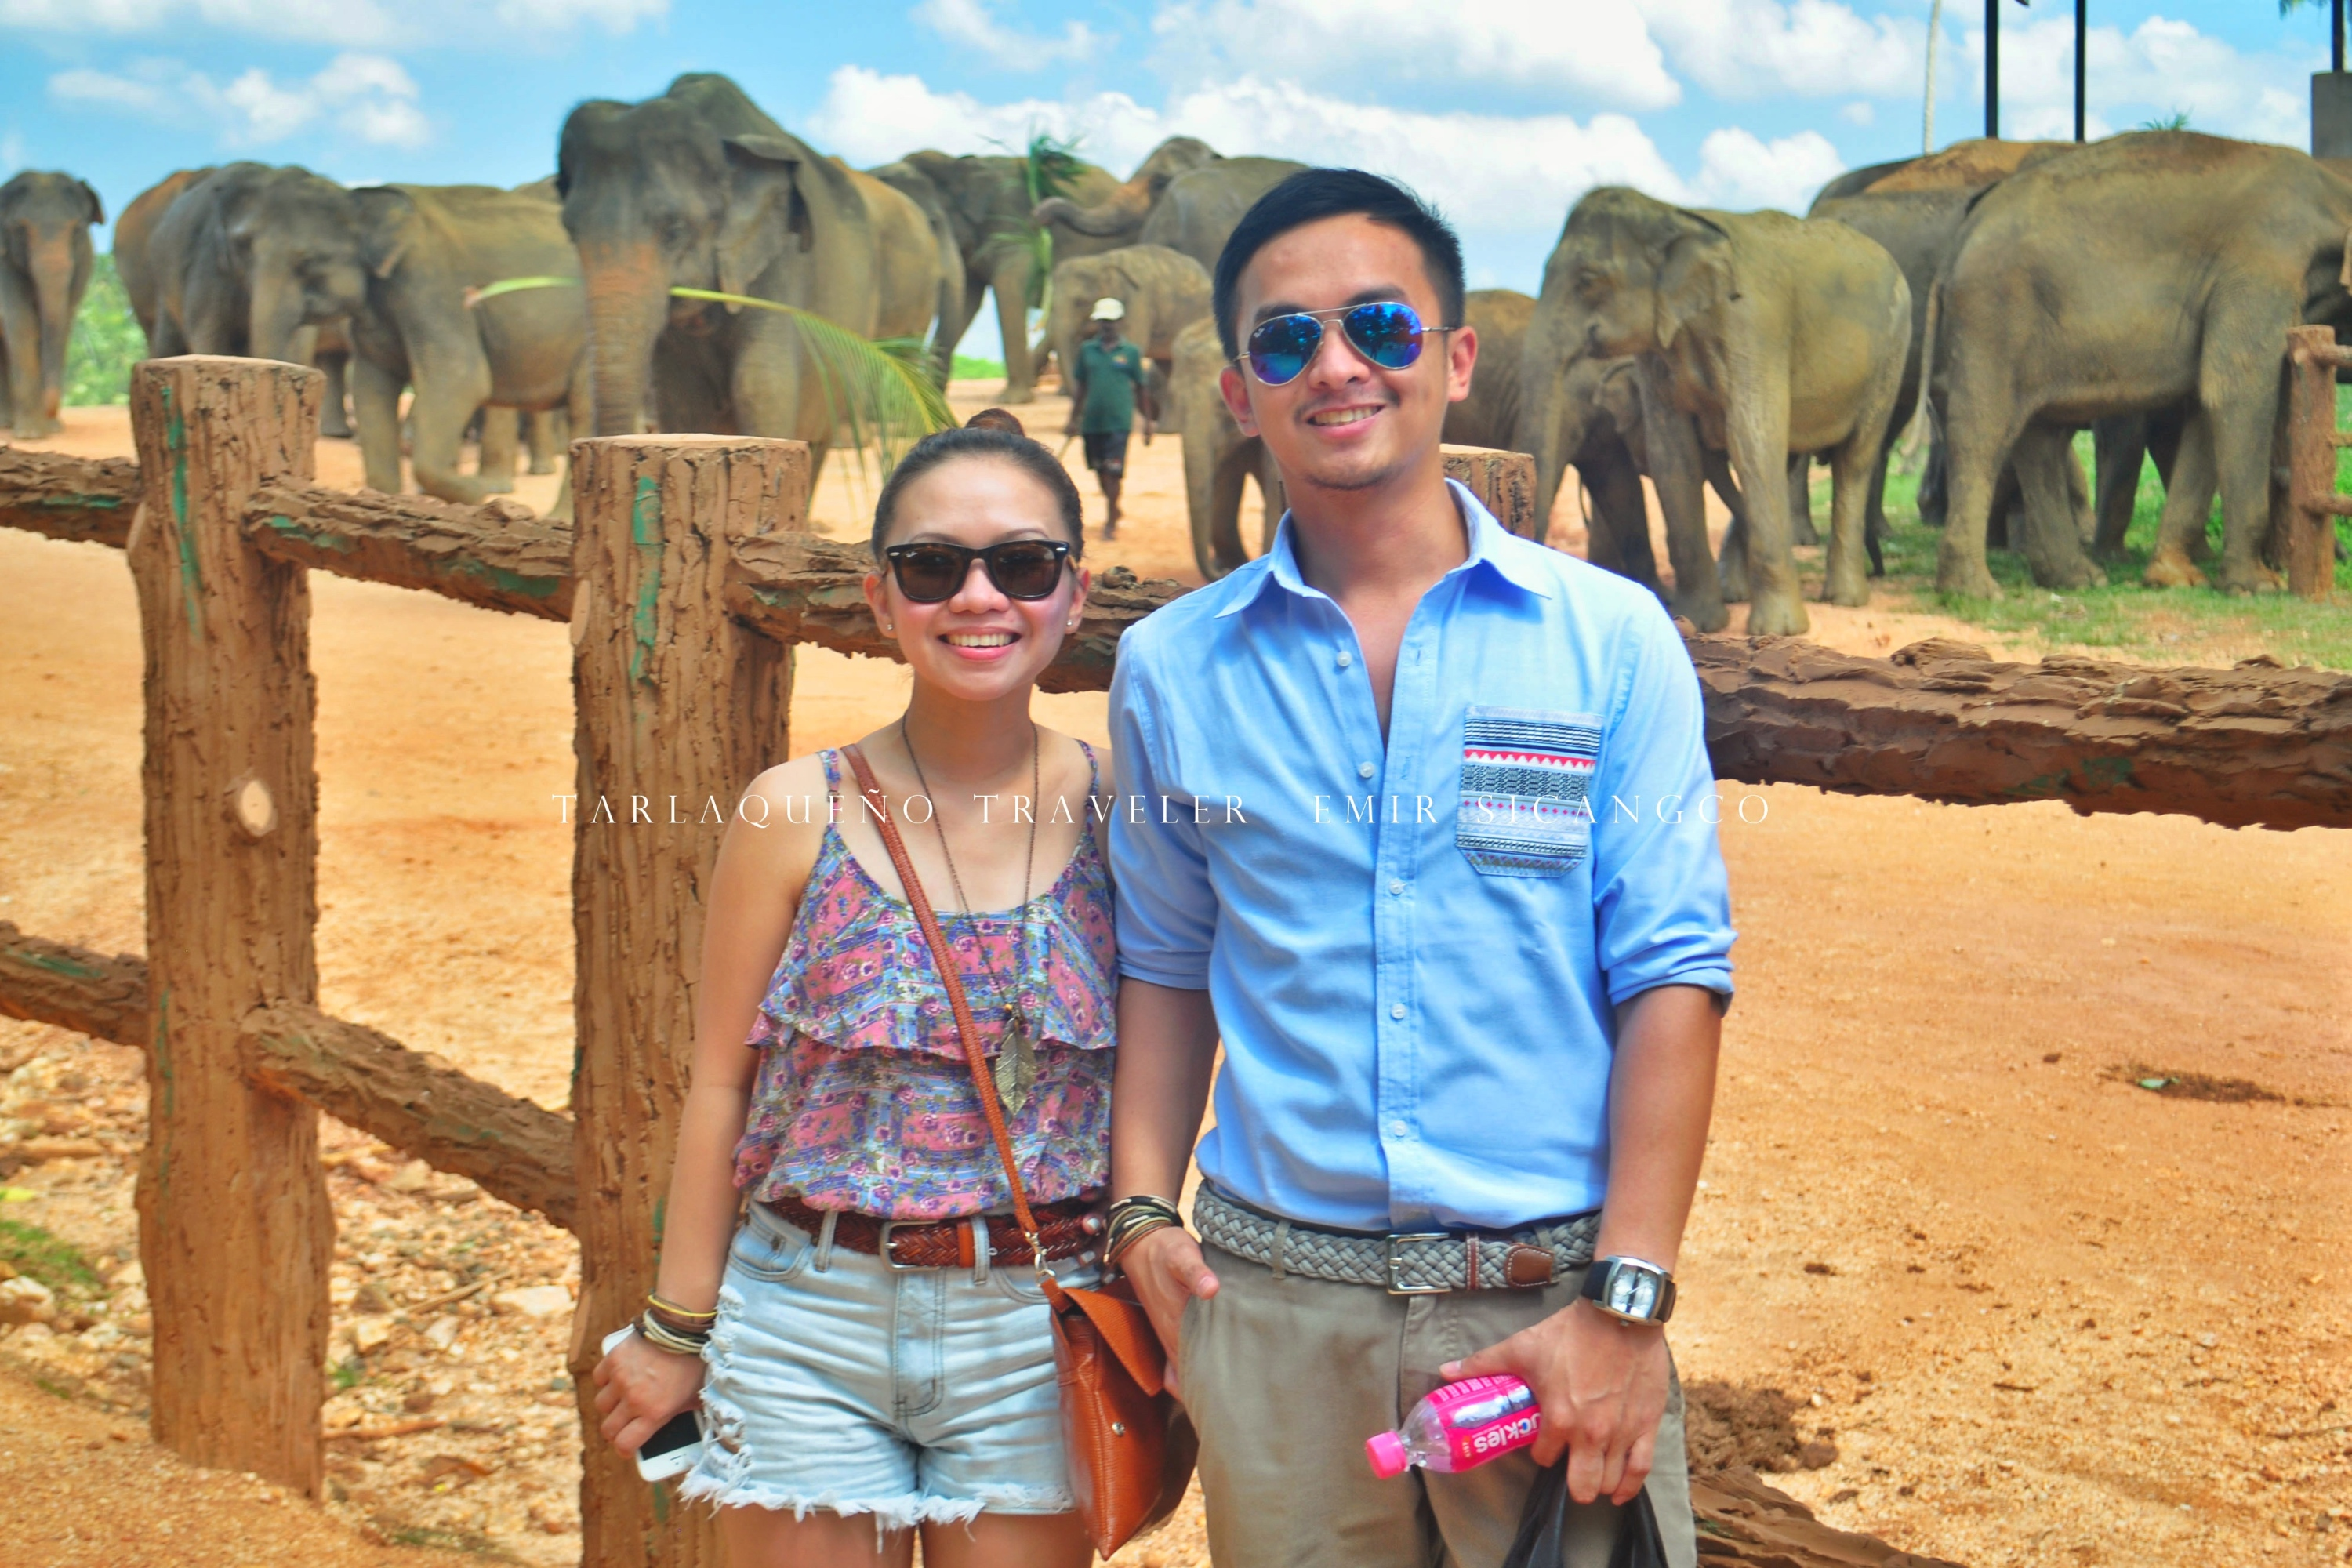 The author and his sister at Pinnawala Elephant Orphanage